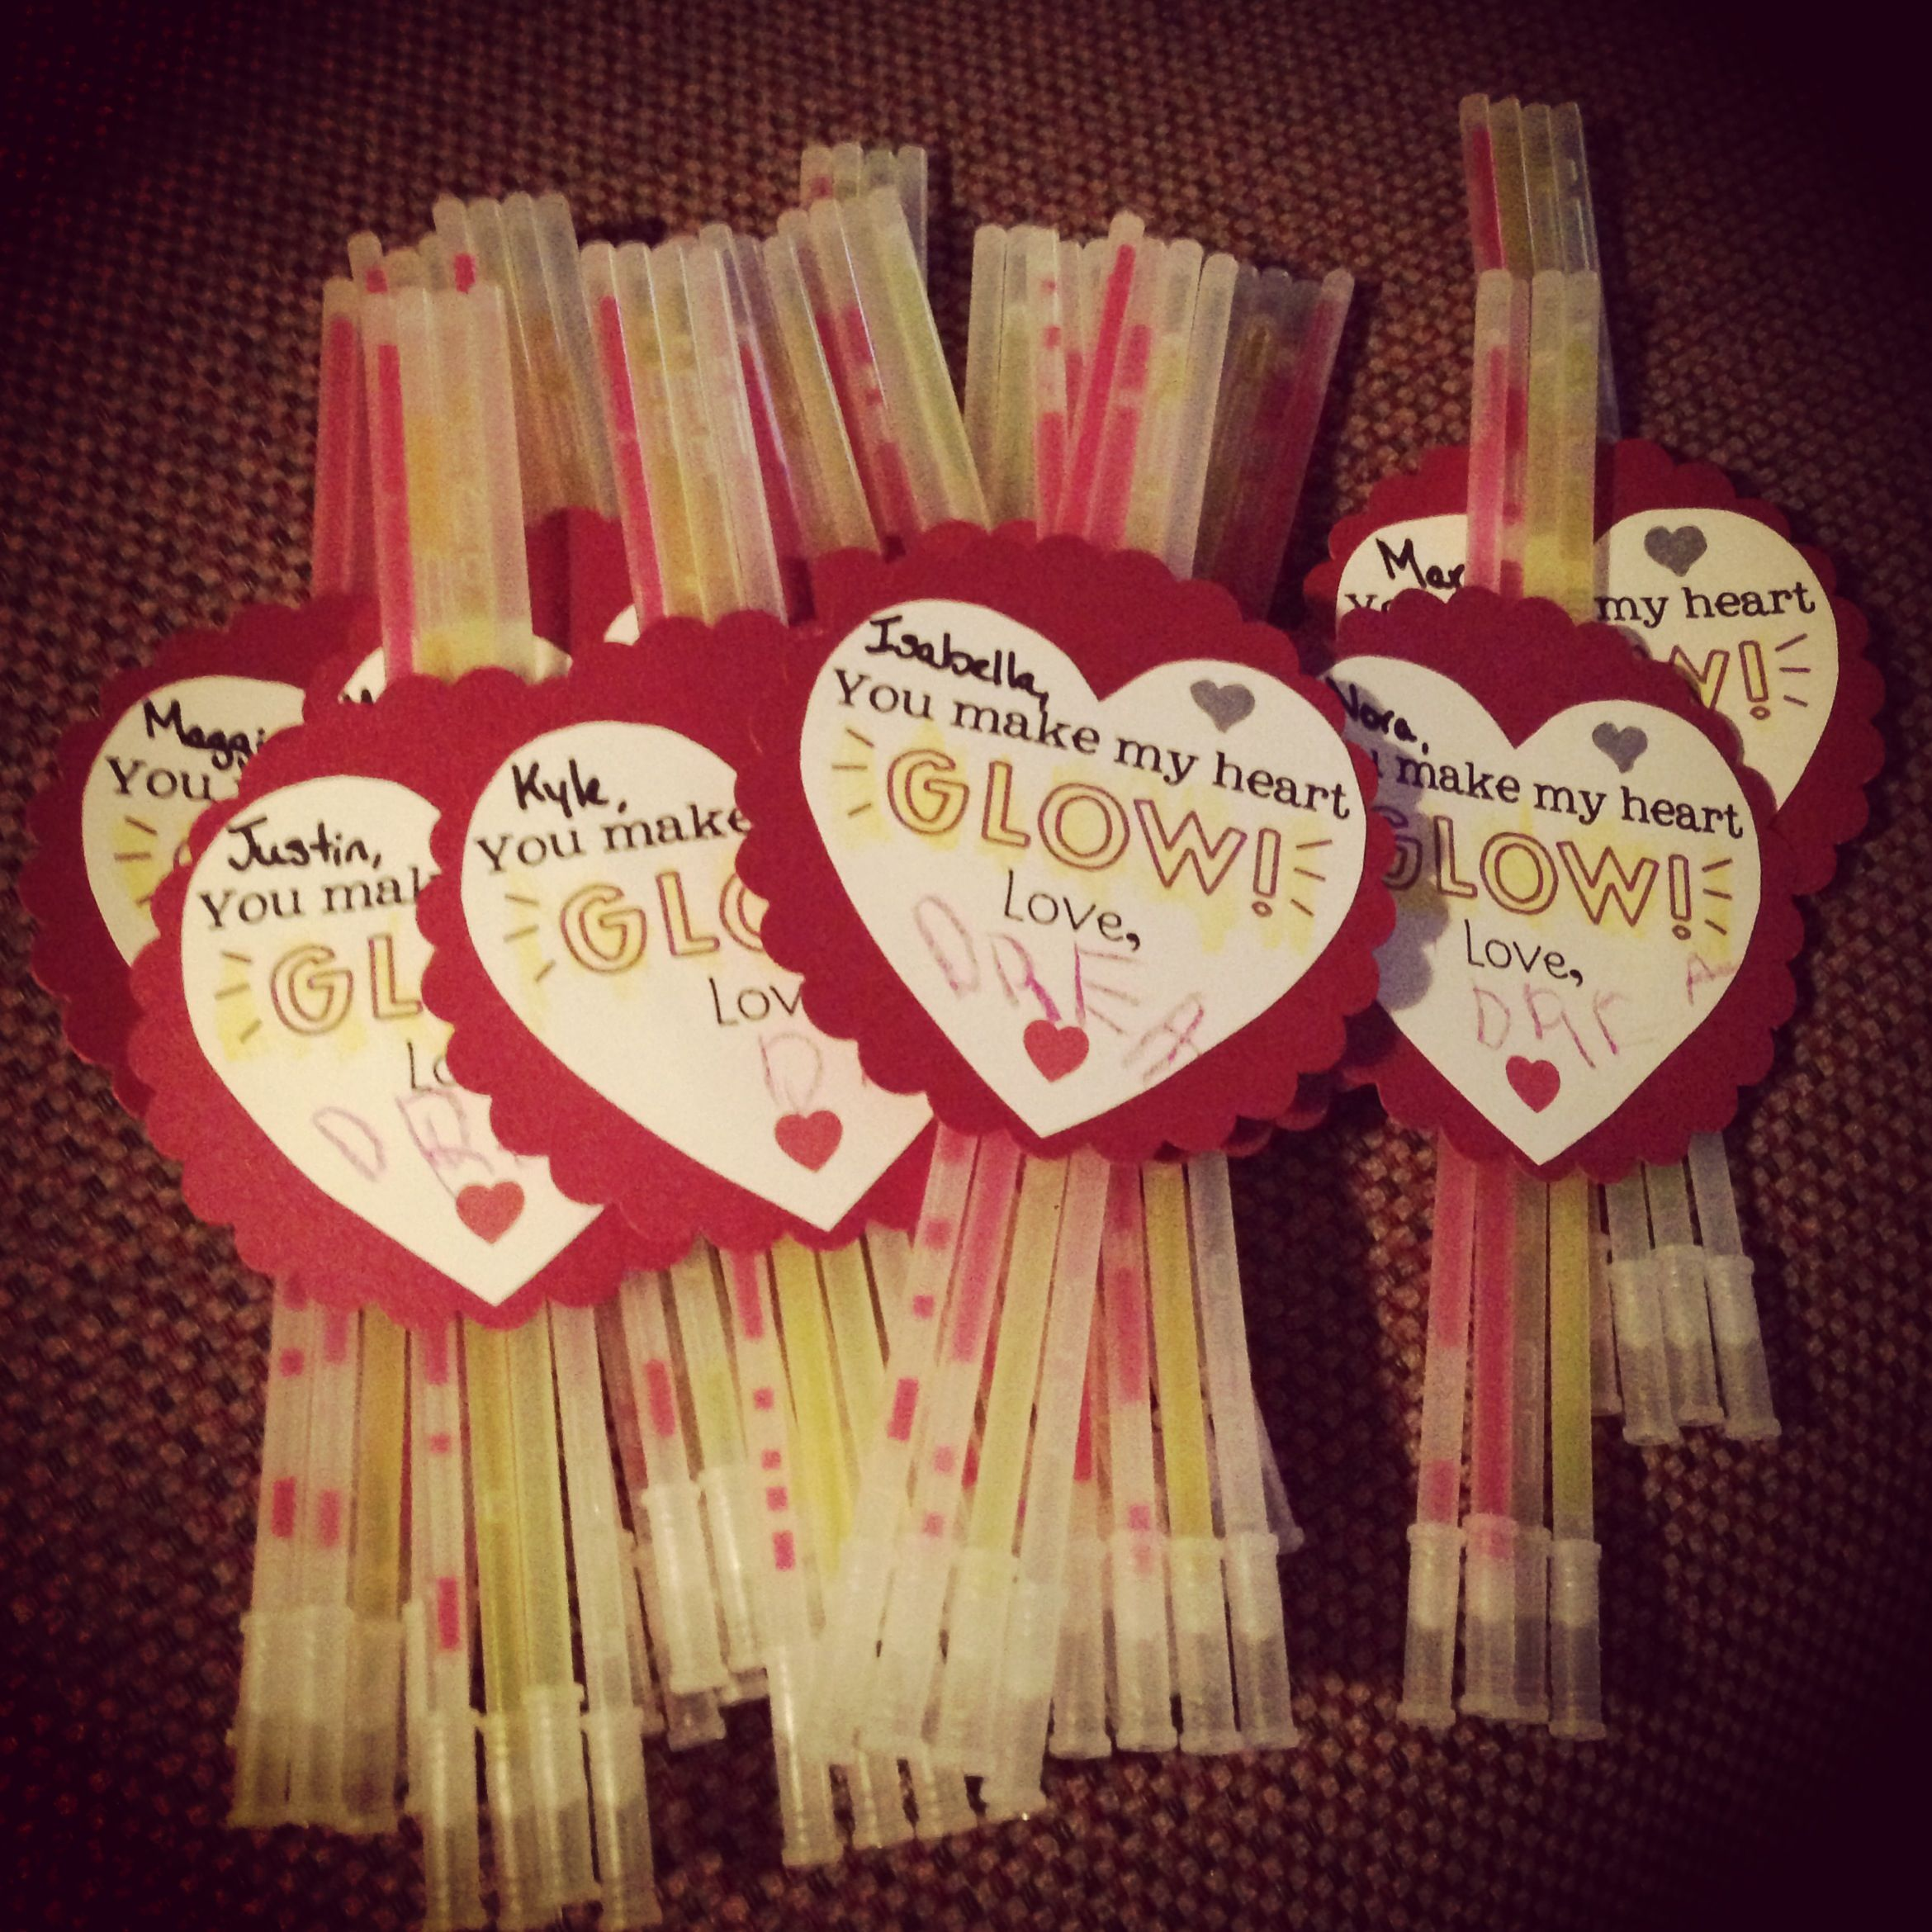 Glow Stick Valentine Printable – That's What {Che} Said… |Pinterest Glow Stick Valentines